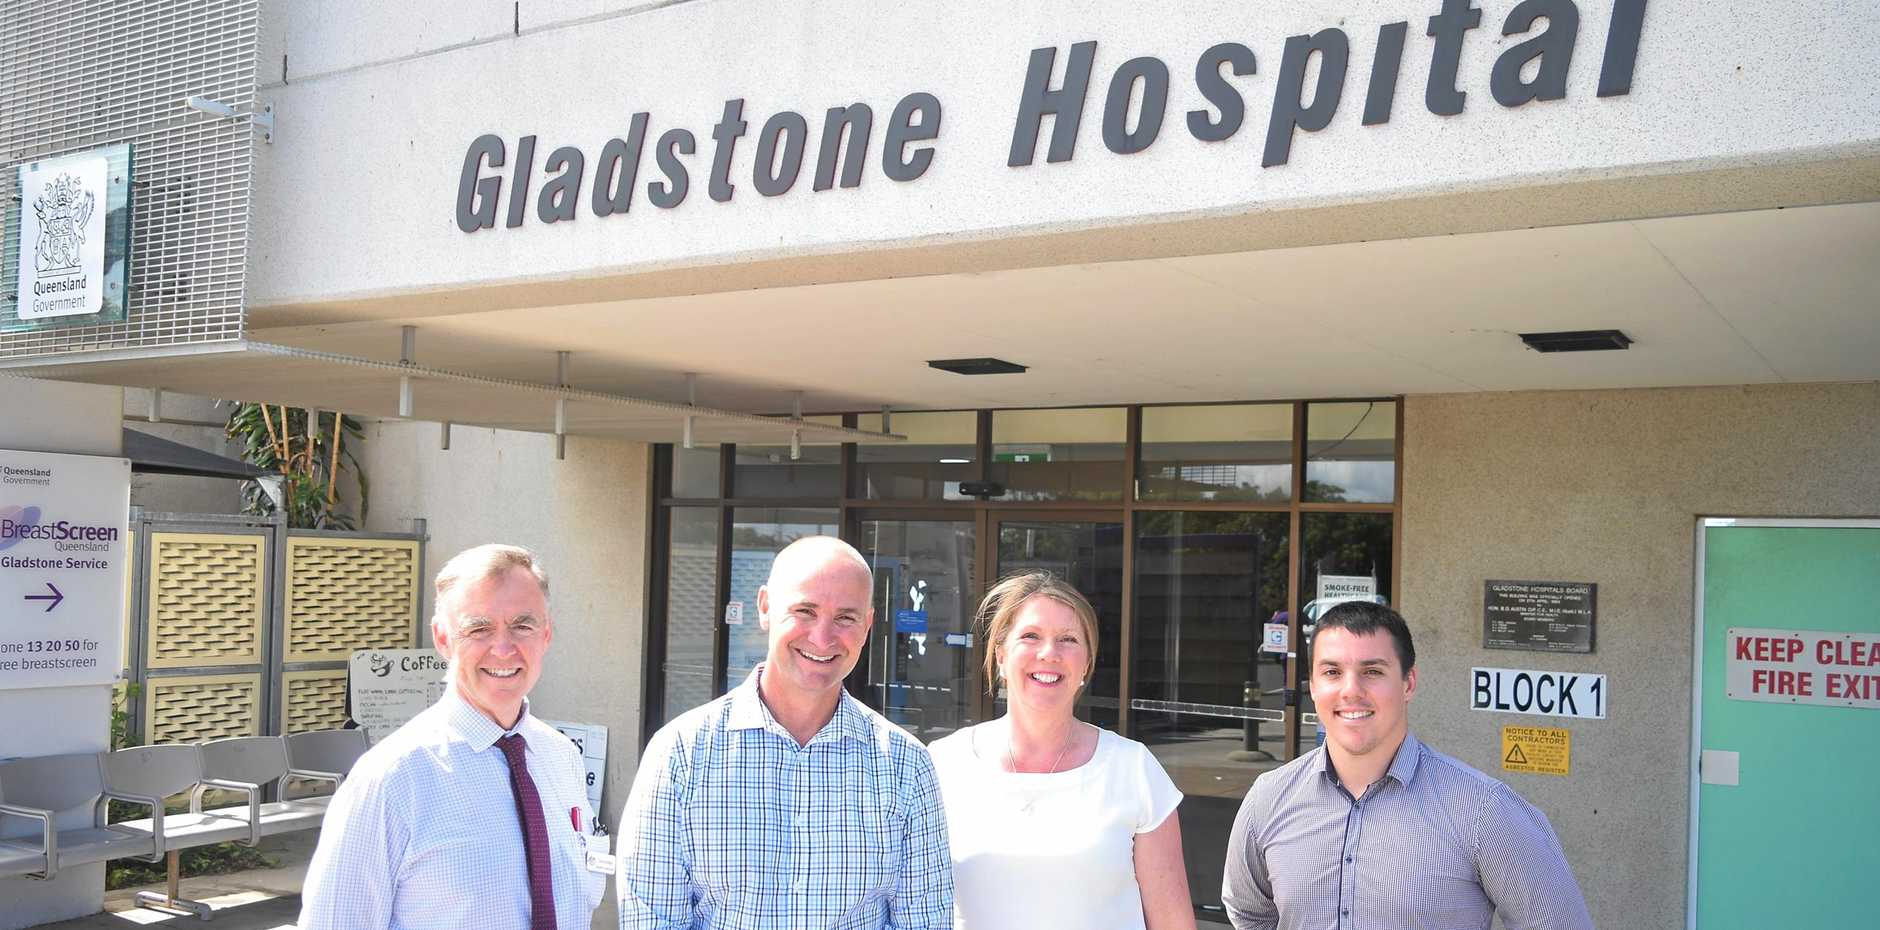 Queensland Senator Chris Ketter, Member for Gladstone Glenn Butcher, Federal Shadow Minister for Health and Medicare Catherine King and former Labor candidate for Flynn Zac Beers at Gladstone Hospital.